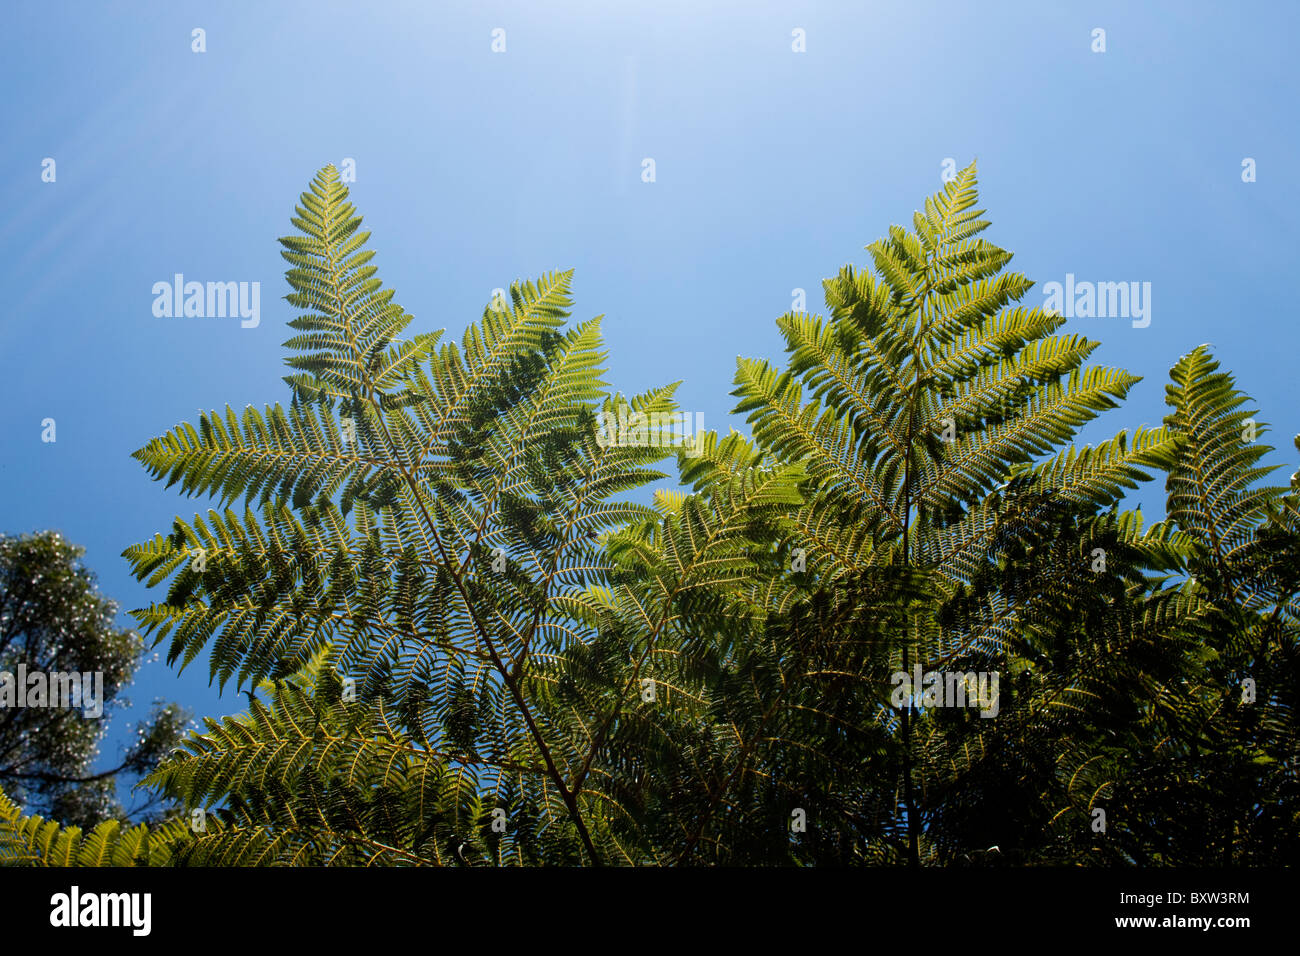 Australia, Victoria, Midday sun shines above tree ferns in coastal forest along Great Ocean Road - Stock Image